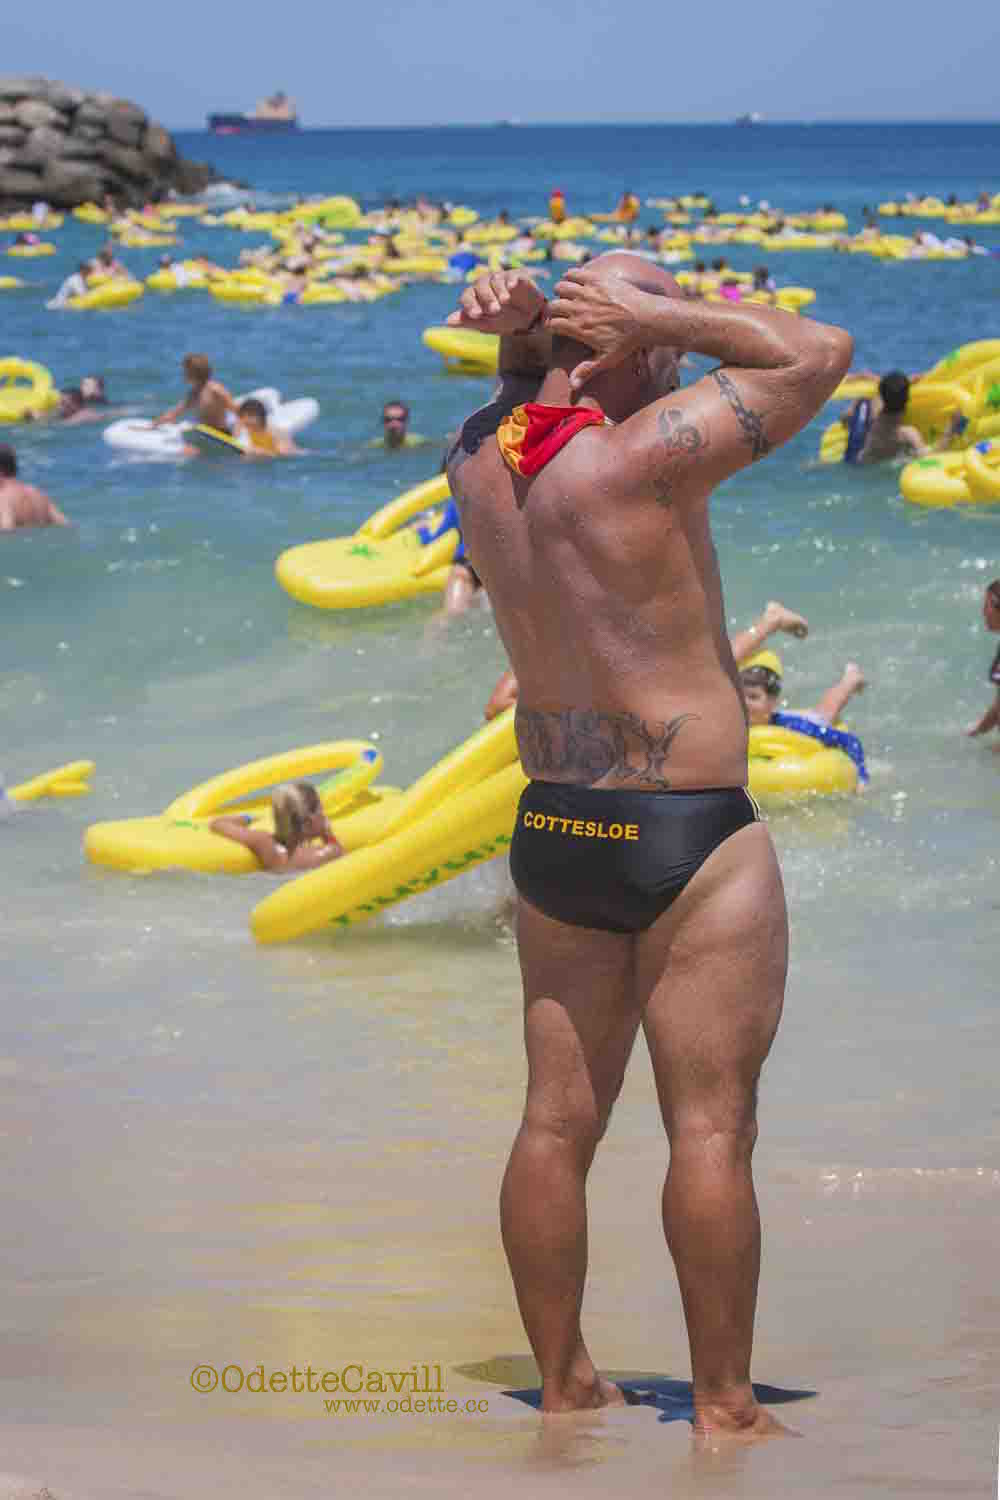 Havaianas Australia Day Thong Challenge on Cottesloe Beach. I couldn't resist this classic 'placement' shot.